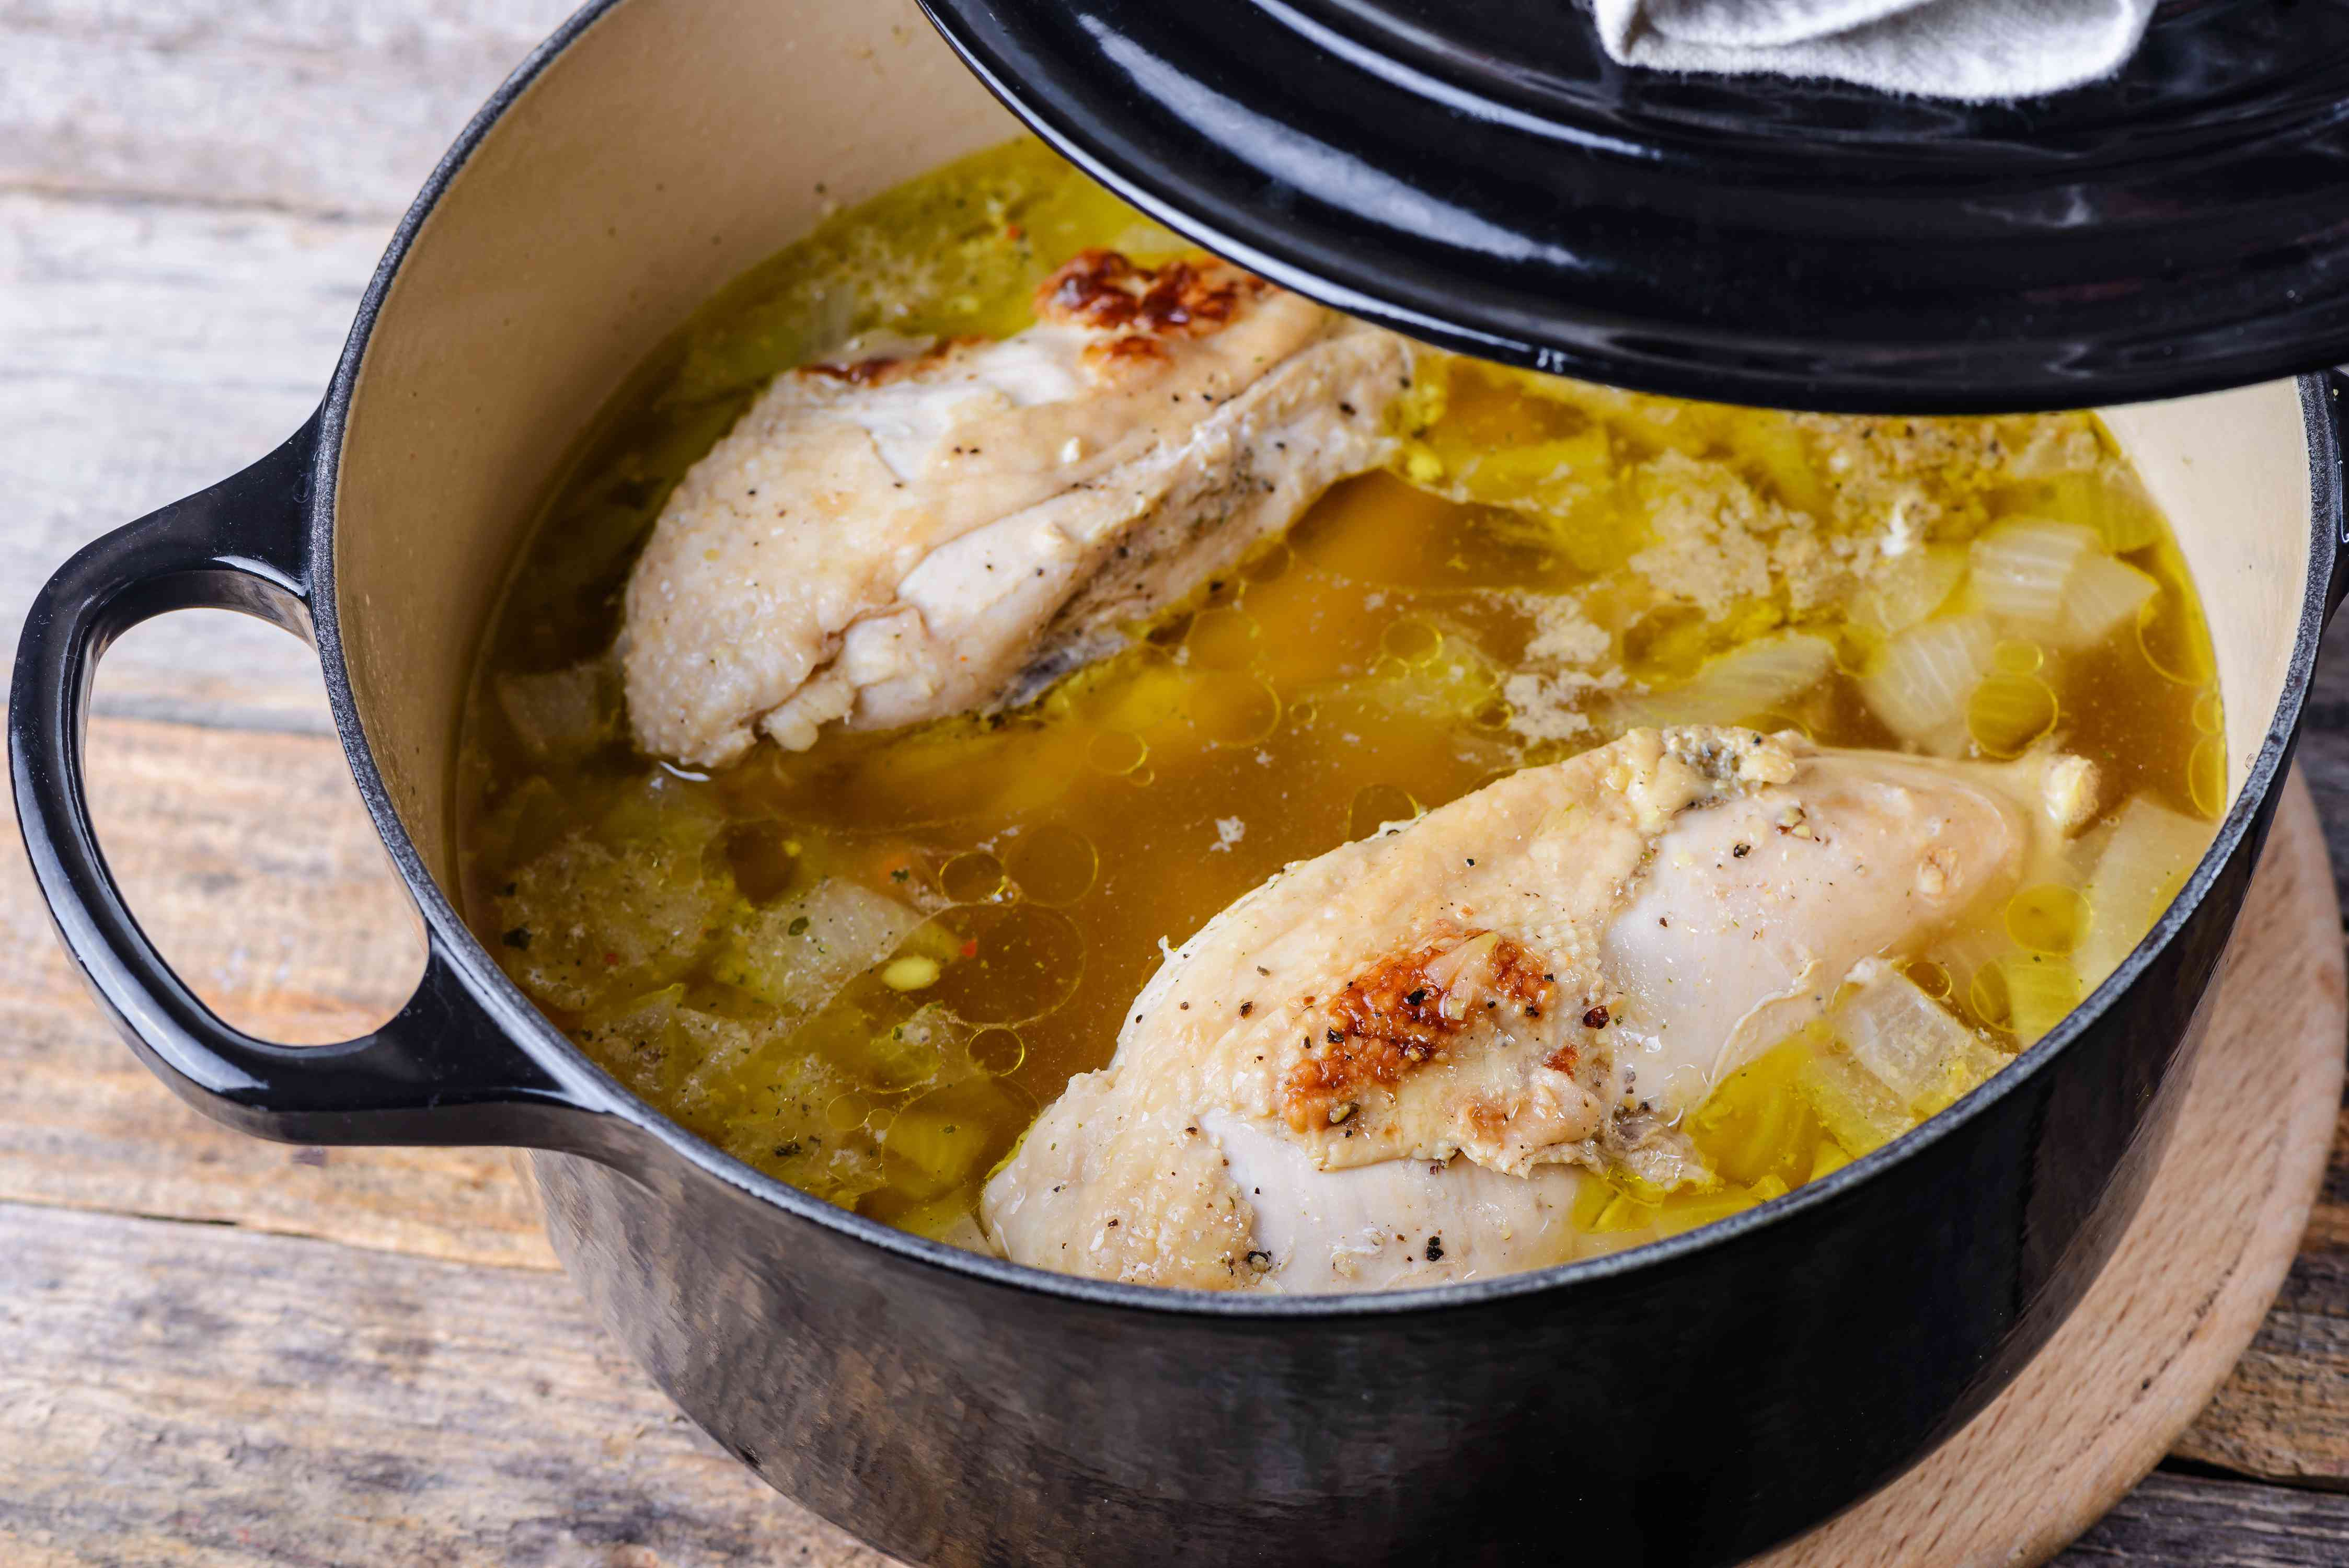 Cooked chicken in the pot with stock